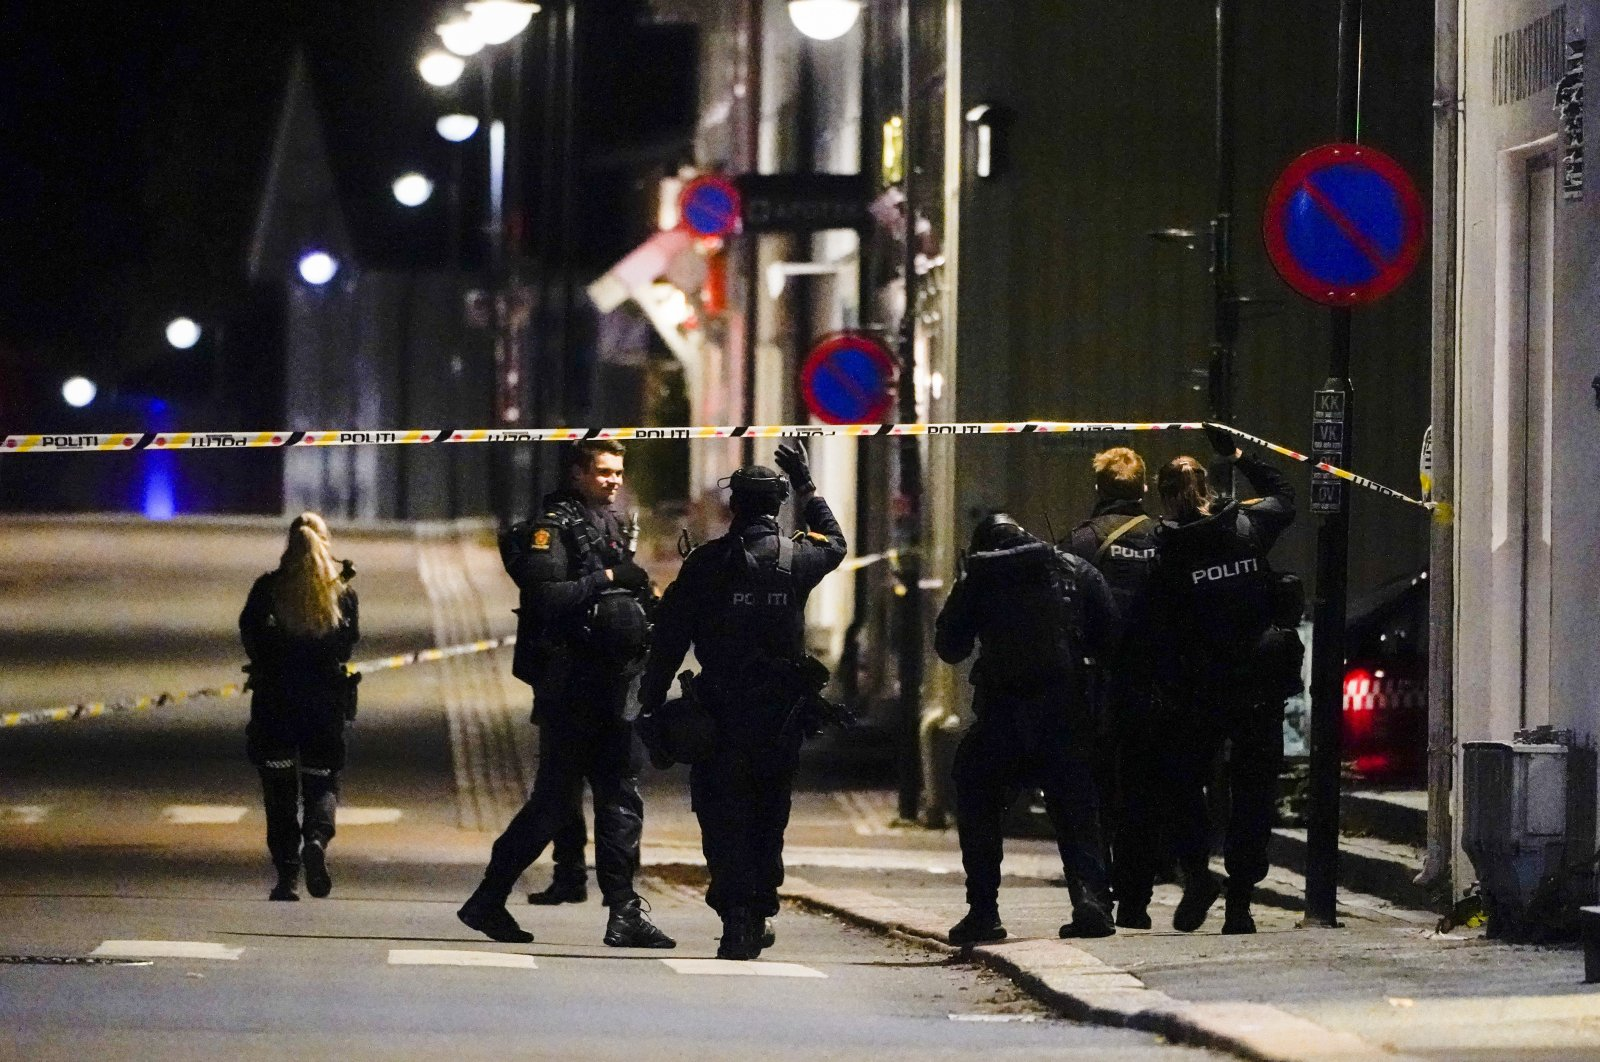 Police stand at the scene after an attack in Kongsberg, Norway, Oct. 13, 2021. (AP Photo)